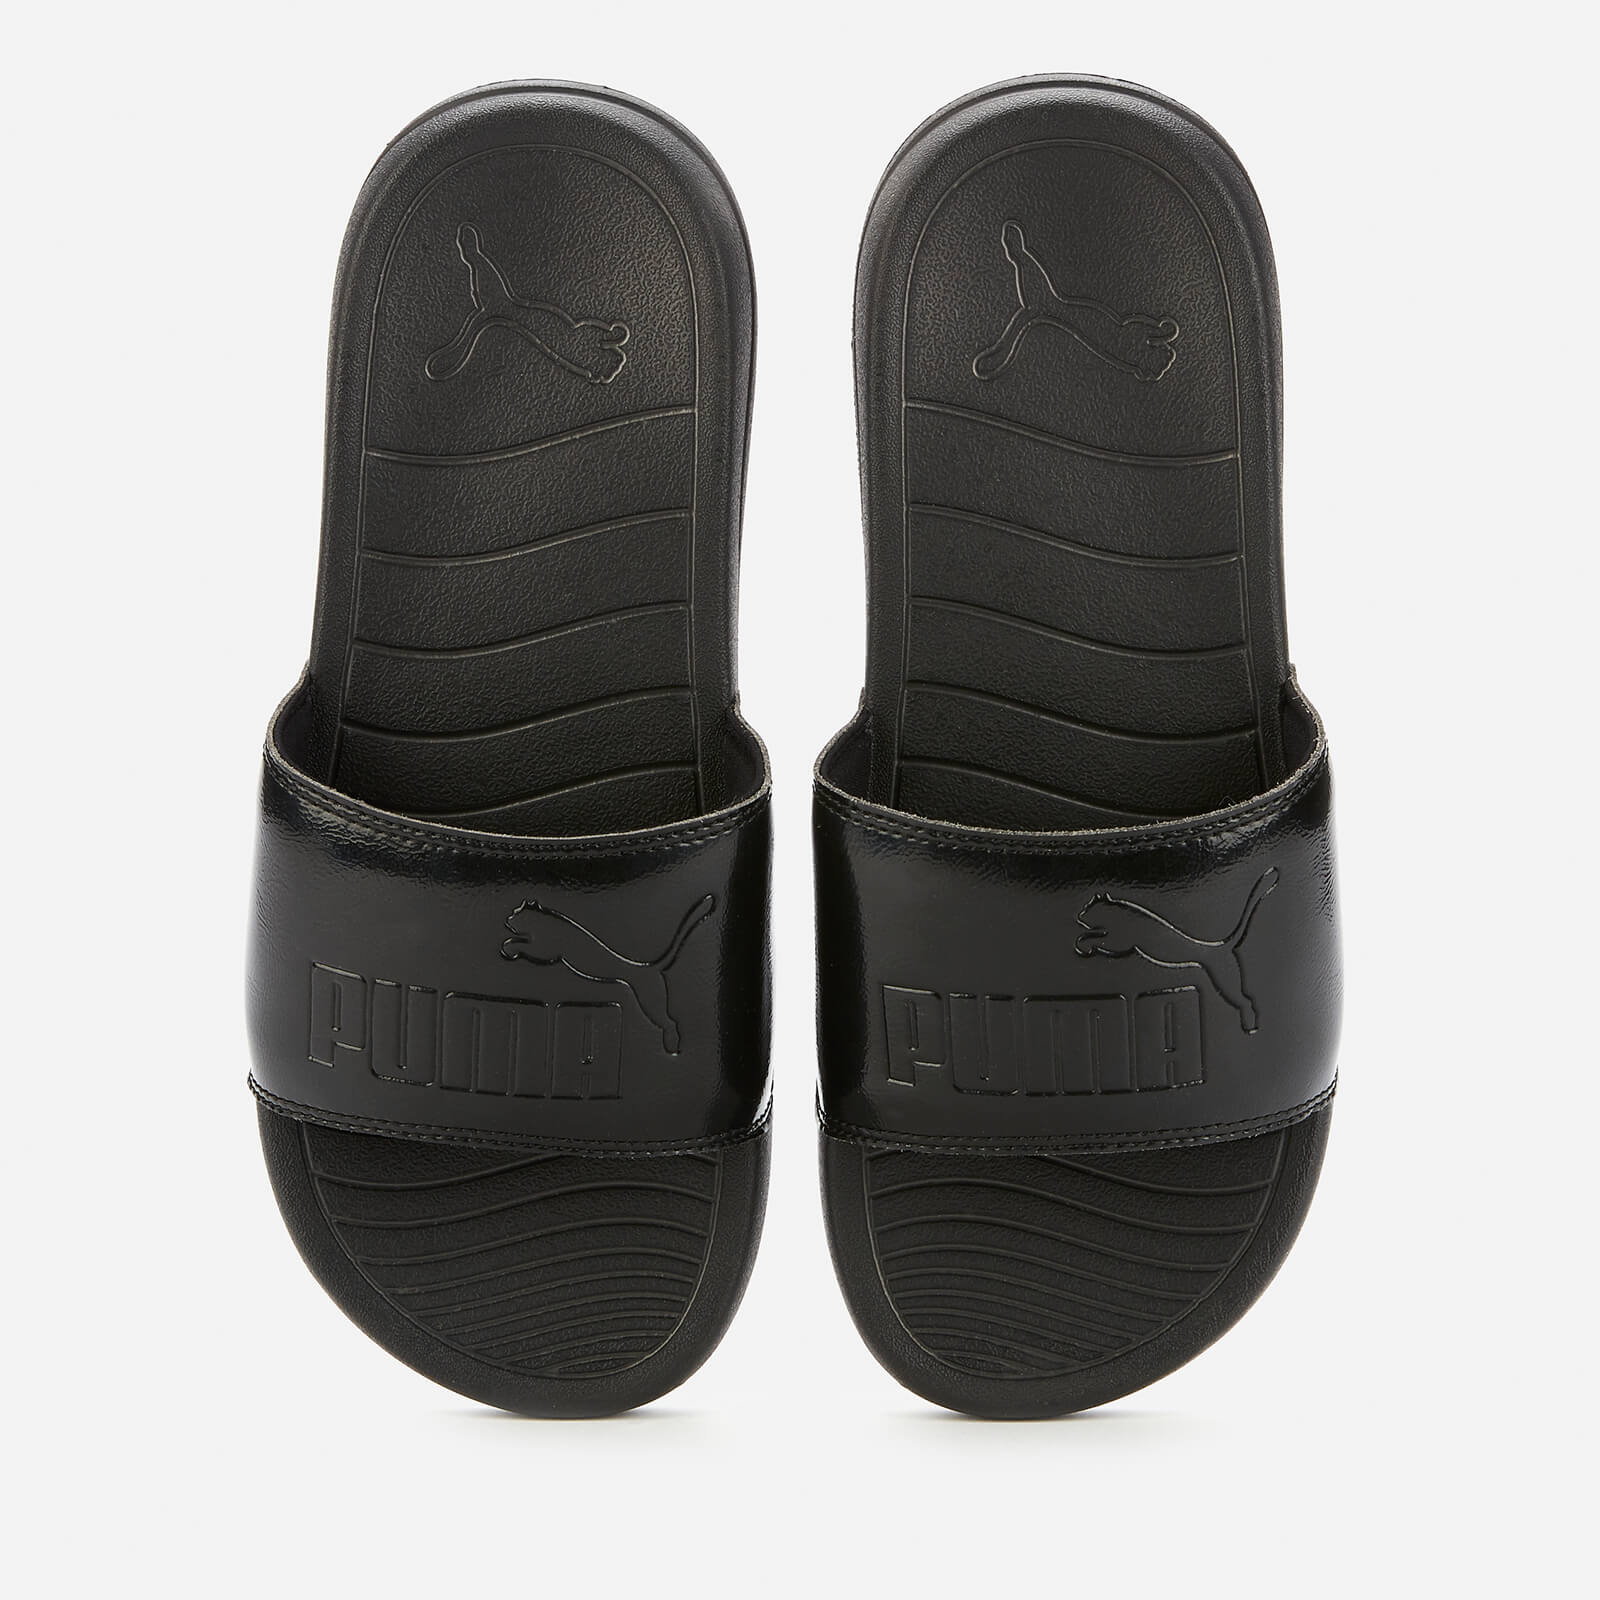 Click to view product details and reviews for Puma Womens Popcat 20 Slide Sandals Puma Black Puma Black Uk 3.